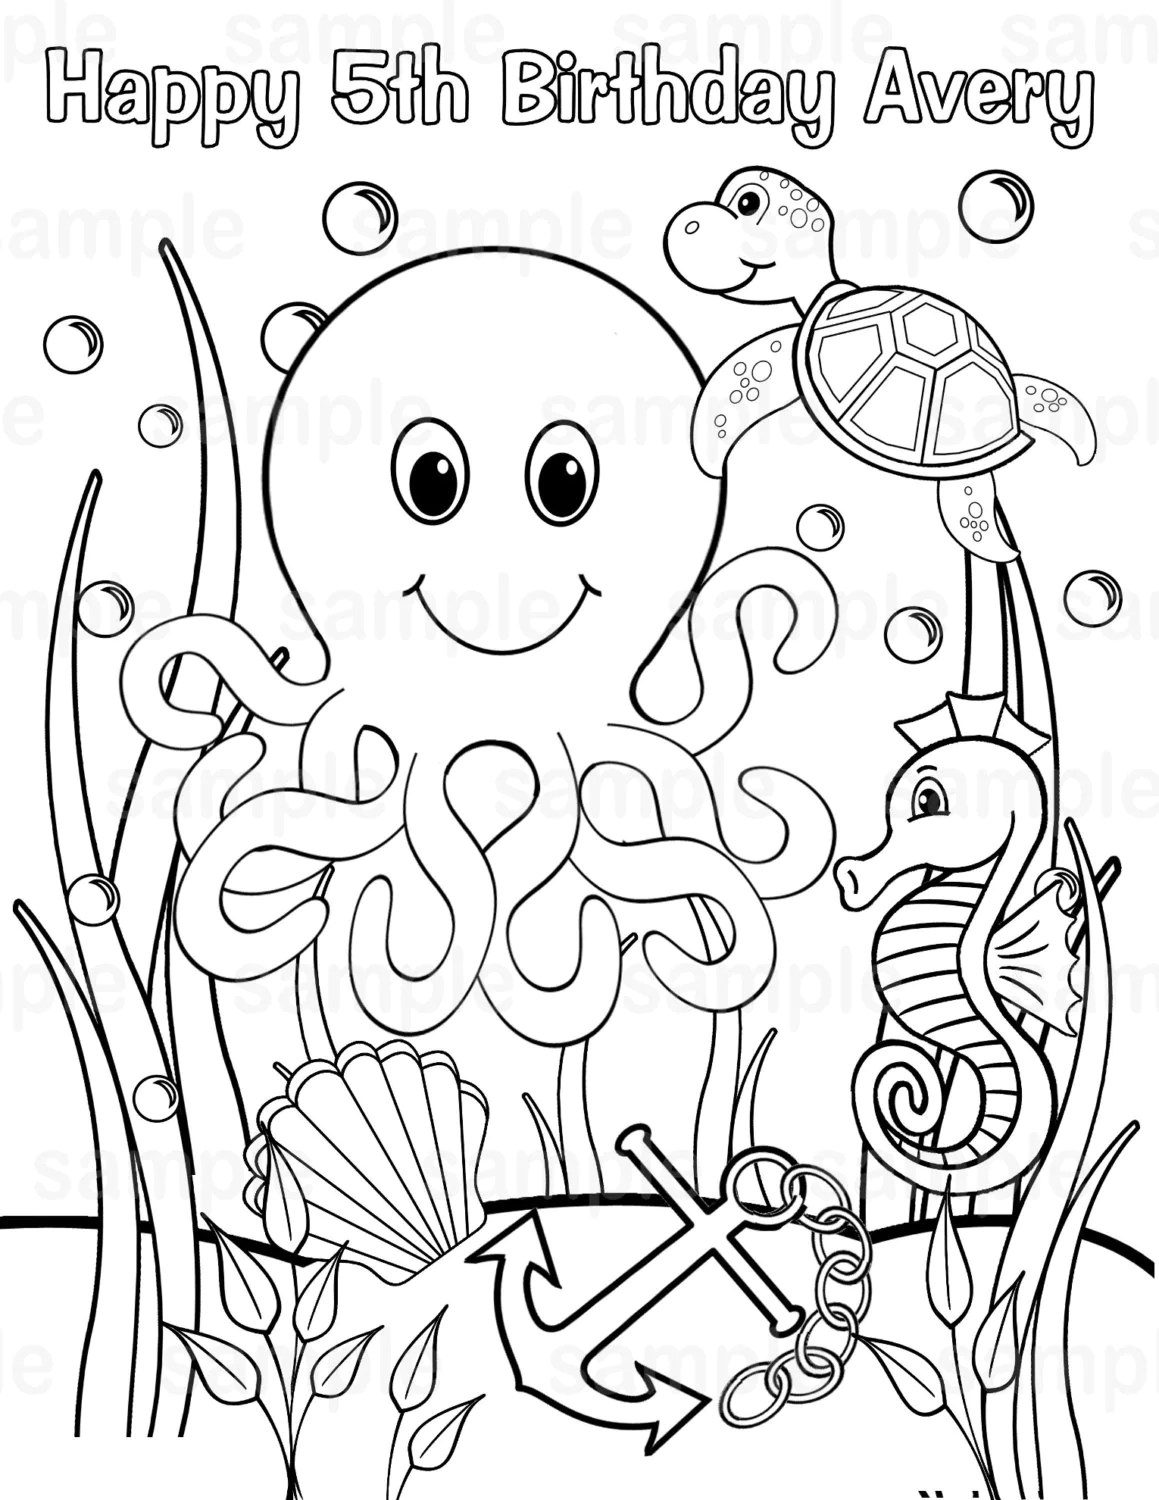 Personalized Printable Under The Sea Birthday Party Favor